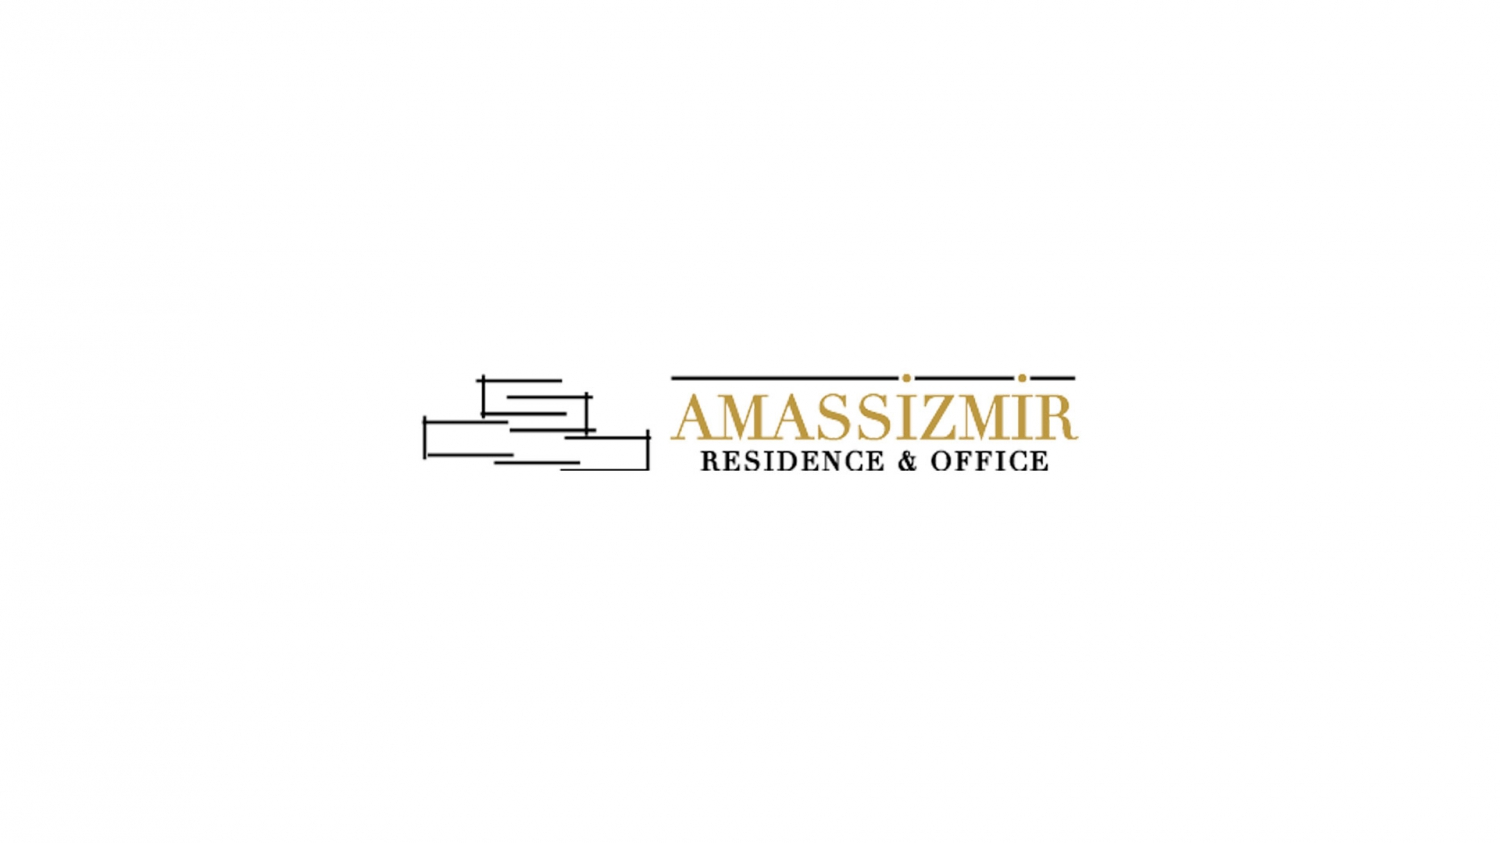 AMASS İZMİR RESIDENCE & OFFICE